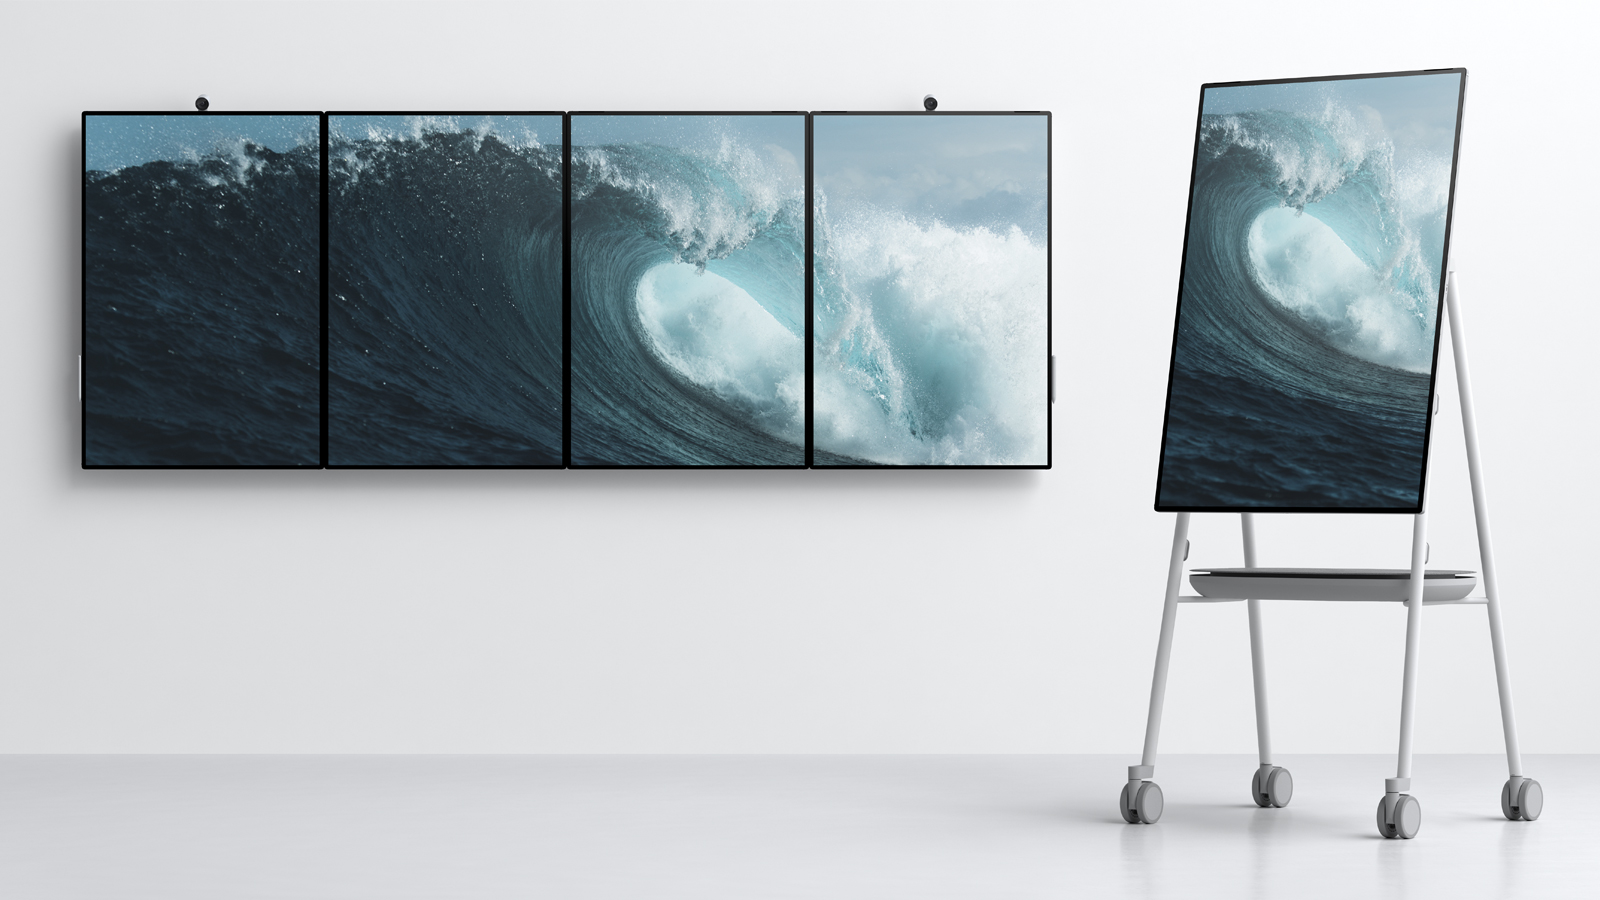 Four Surface Hub 2X smart boards tiled together on wall in portrait orientation, and one Surface Hub 2X rotated to a portrait orientation on a stand designed by Steelcase